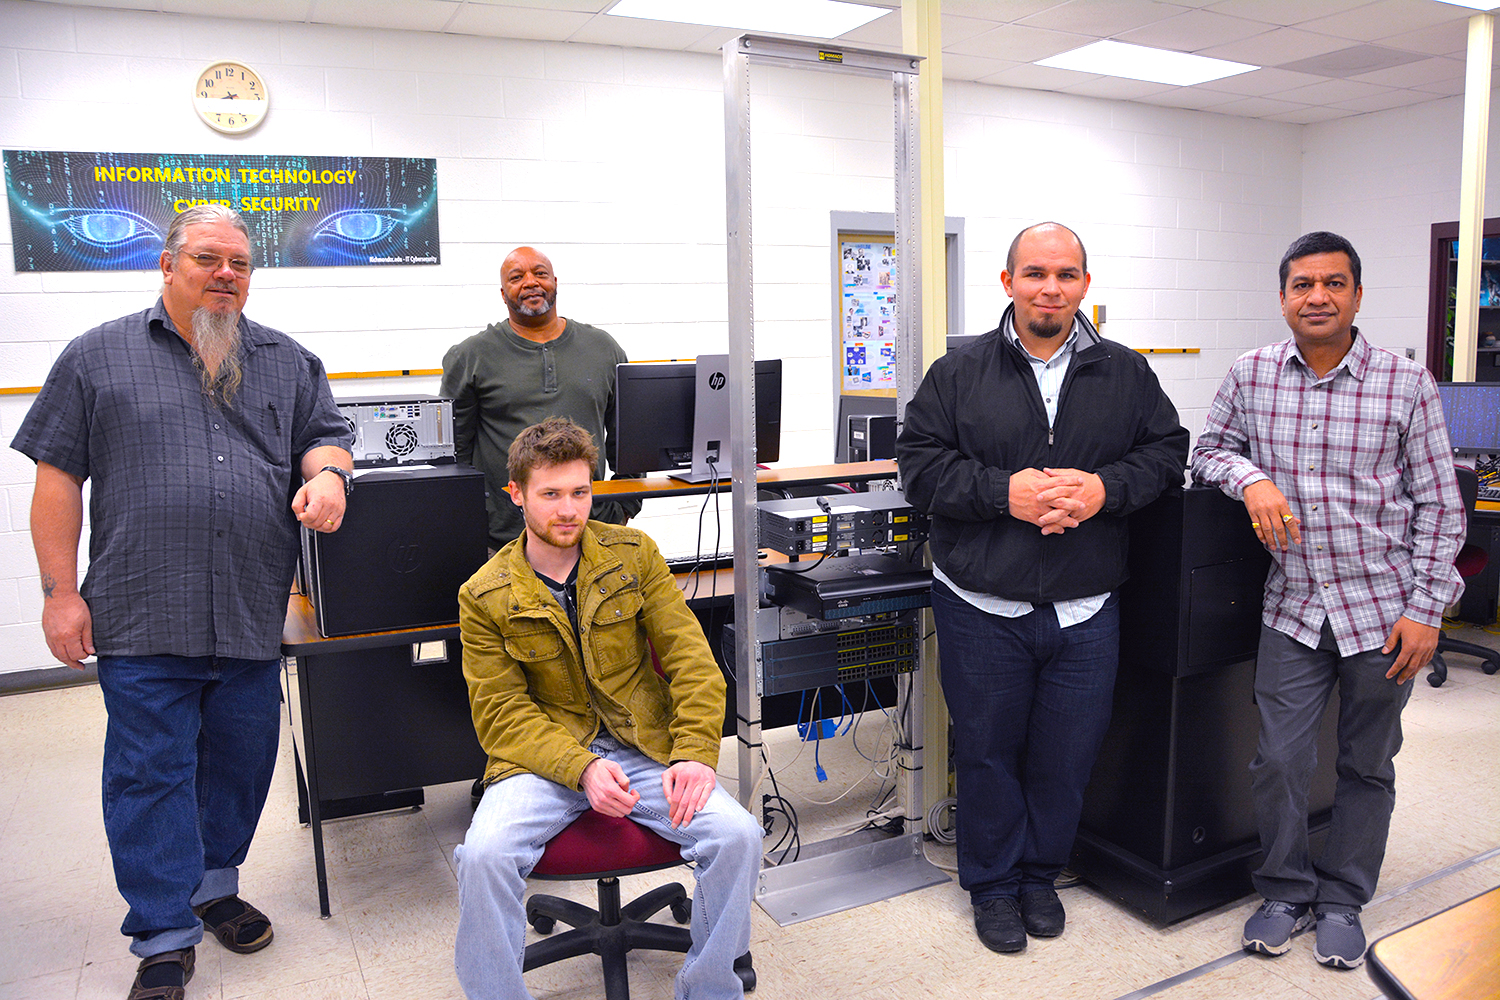 Pictured are the Richmond Community College Information Technology students who completed IT projects for FerroFab in Hamlet. From left to right are Edward Hartley, Taylor Smith (seated), Lindell Bright, Kevin Taylor and Himansu Patel